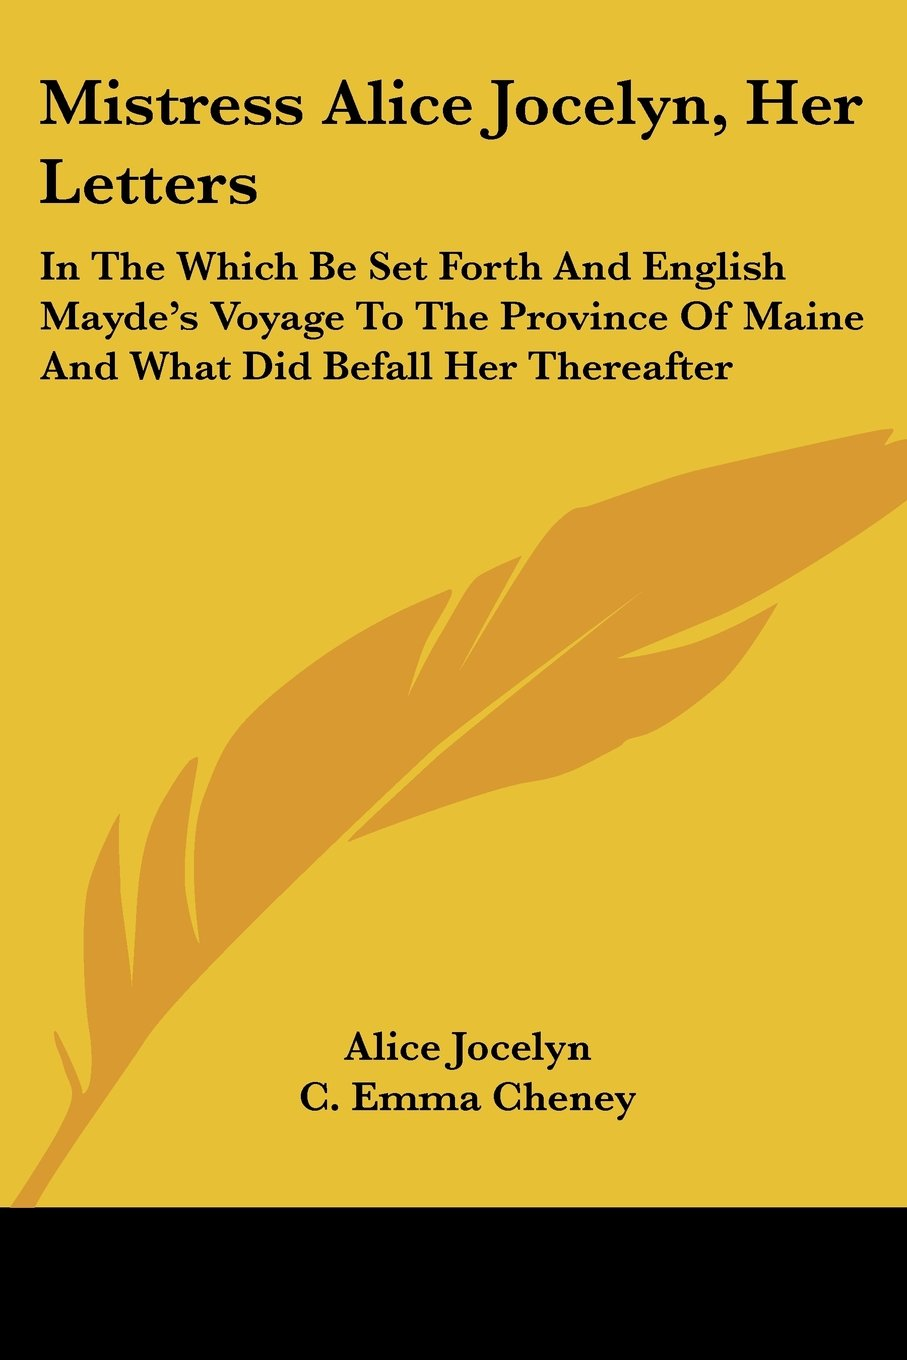 Mistress Alice Jocelyn, Her Letters: In The Which Be Set Forth And English Mayde's Voyage To The Province Of Maine And What Did Befall Her Thereafter pdf